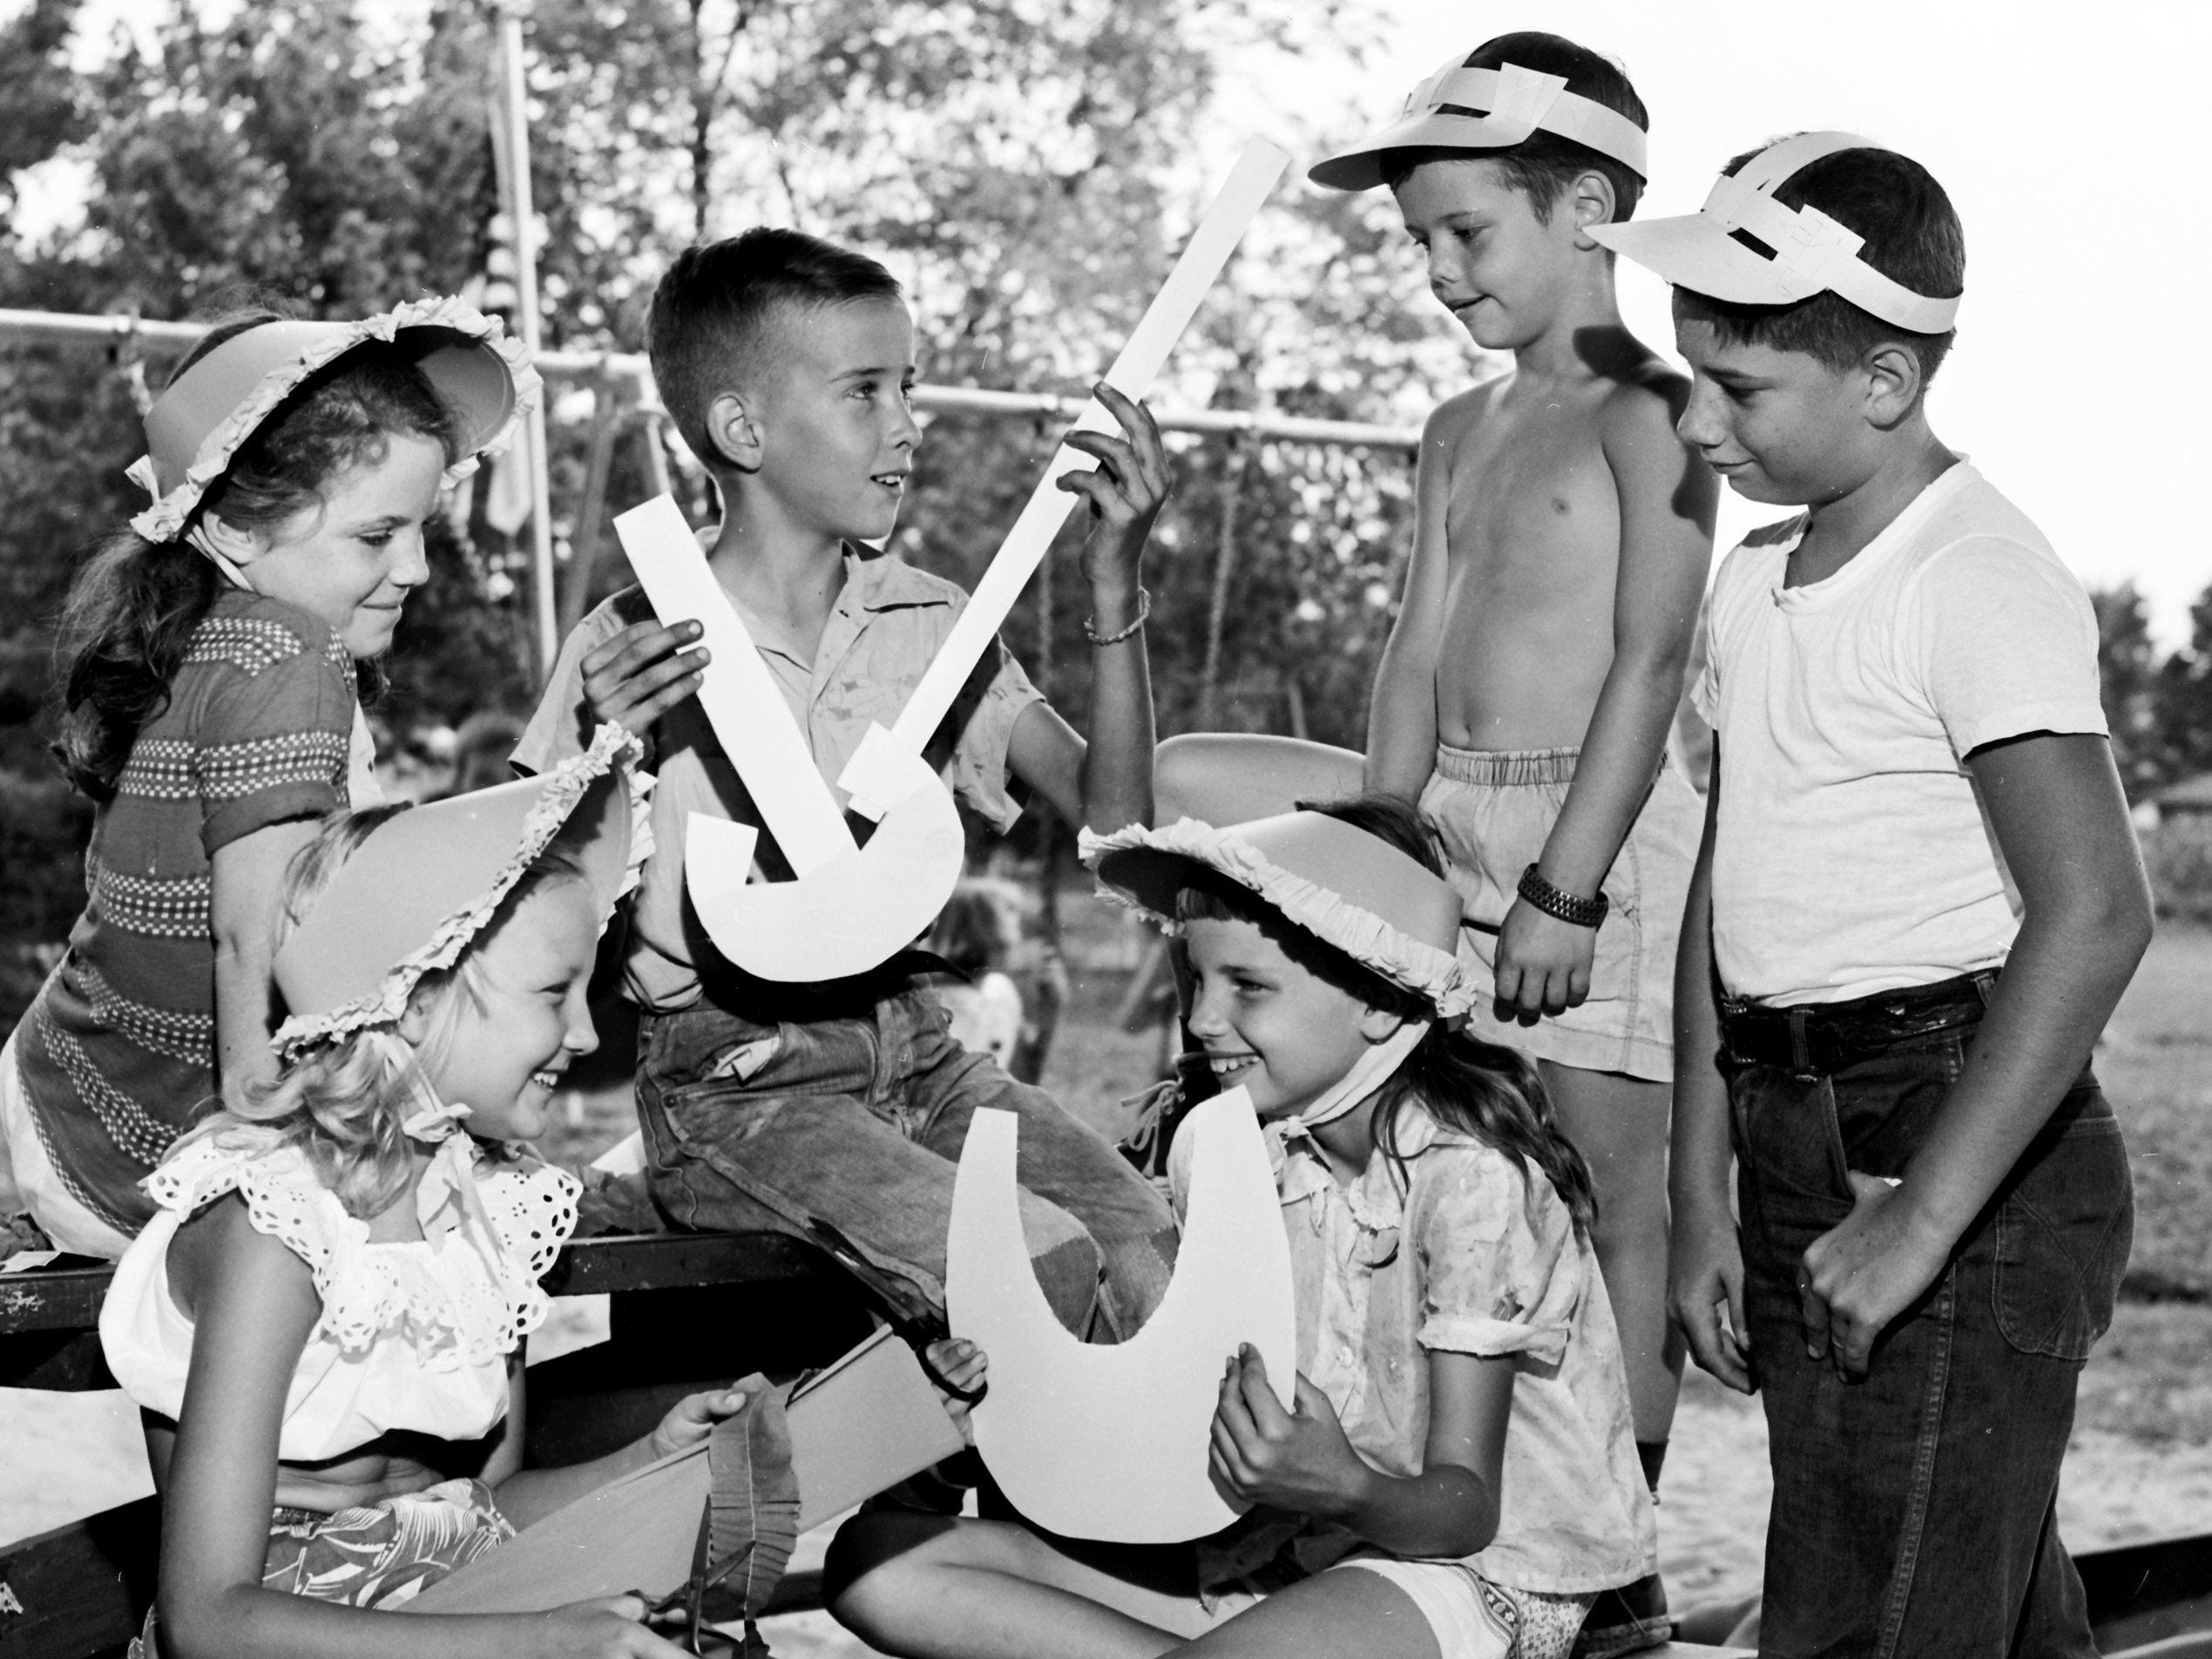 These youngsters at Highland Park Playground are fashioning headgear under the direction of the Recreation Department of the Memphis Park Commission in August 1953. Myra Todd (Seated Left) 10, of 3519 Mayflower, wears a cardboard sunbonnet and holds crepe paper and scissors to make the ruffles on the bonnet held by Joyce Ann Joyner (Seated Right), 9, of 1399 National. Meanwhile (From Left at Back), Rosemary Jones, 10, of 3538 Mayflower watches as Buddy Joyner, 11, of 1399 National demonstrates how to make a boy's sun visor like the one worn by Don Childress, 6, of 3432 Vernon and Jimmy Russell, 14, of 3525 Kallaher.